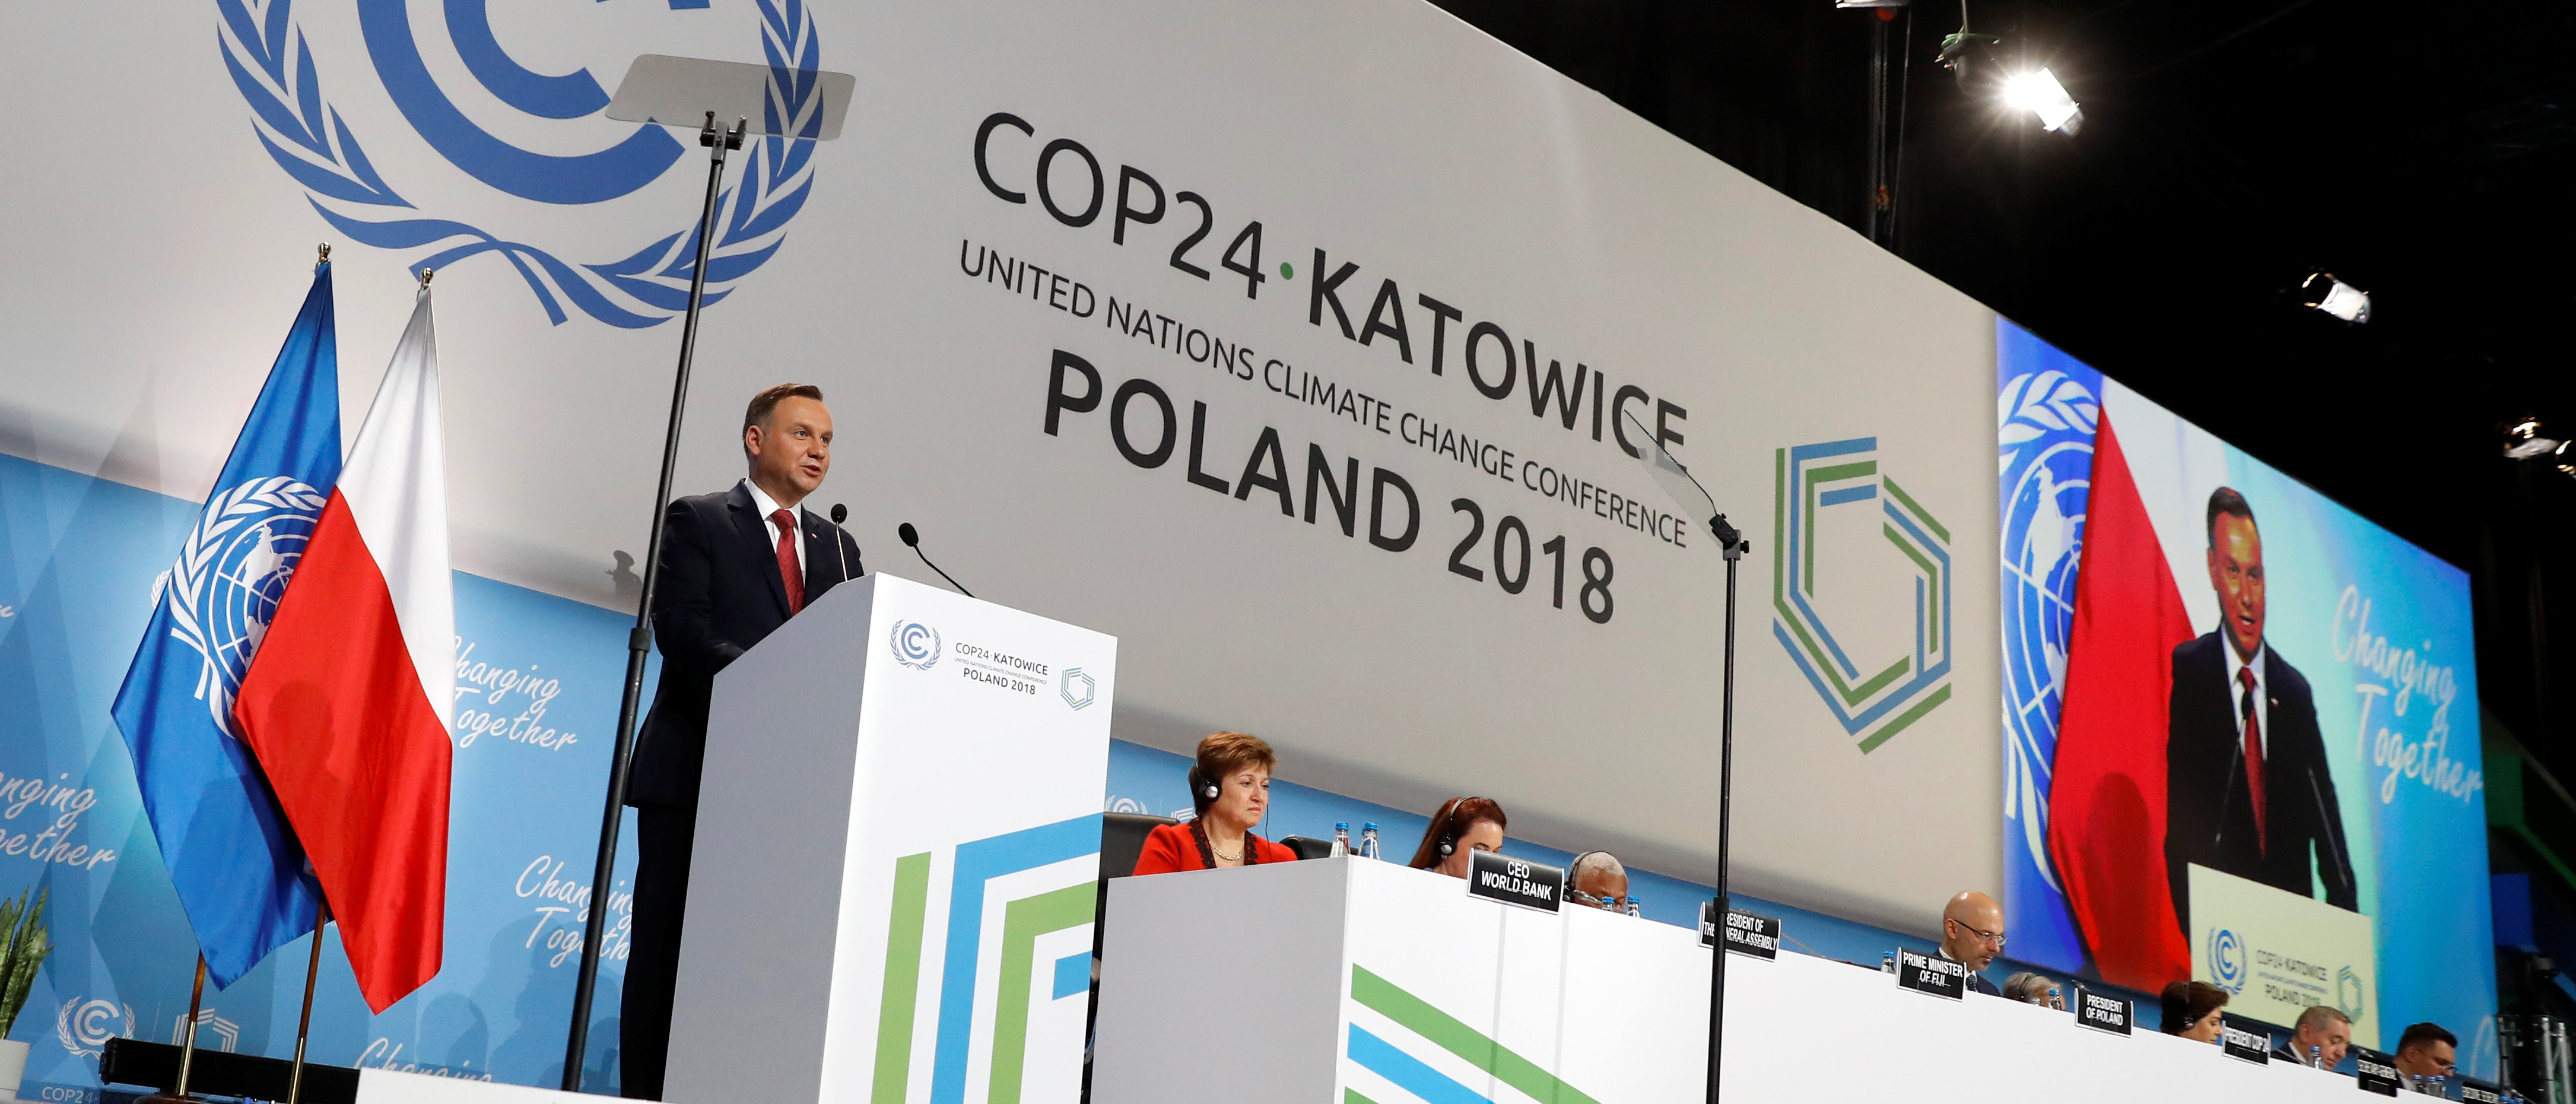 Polish President Andrzej Duda addresses during the opening of COP24 UN Climate Change Conference 2018 in Katowice, Poland December 3, 2018. REUTERS/Kacper Pempel.